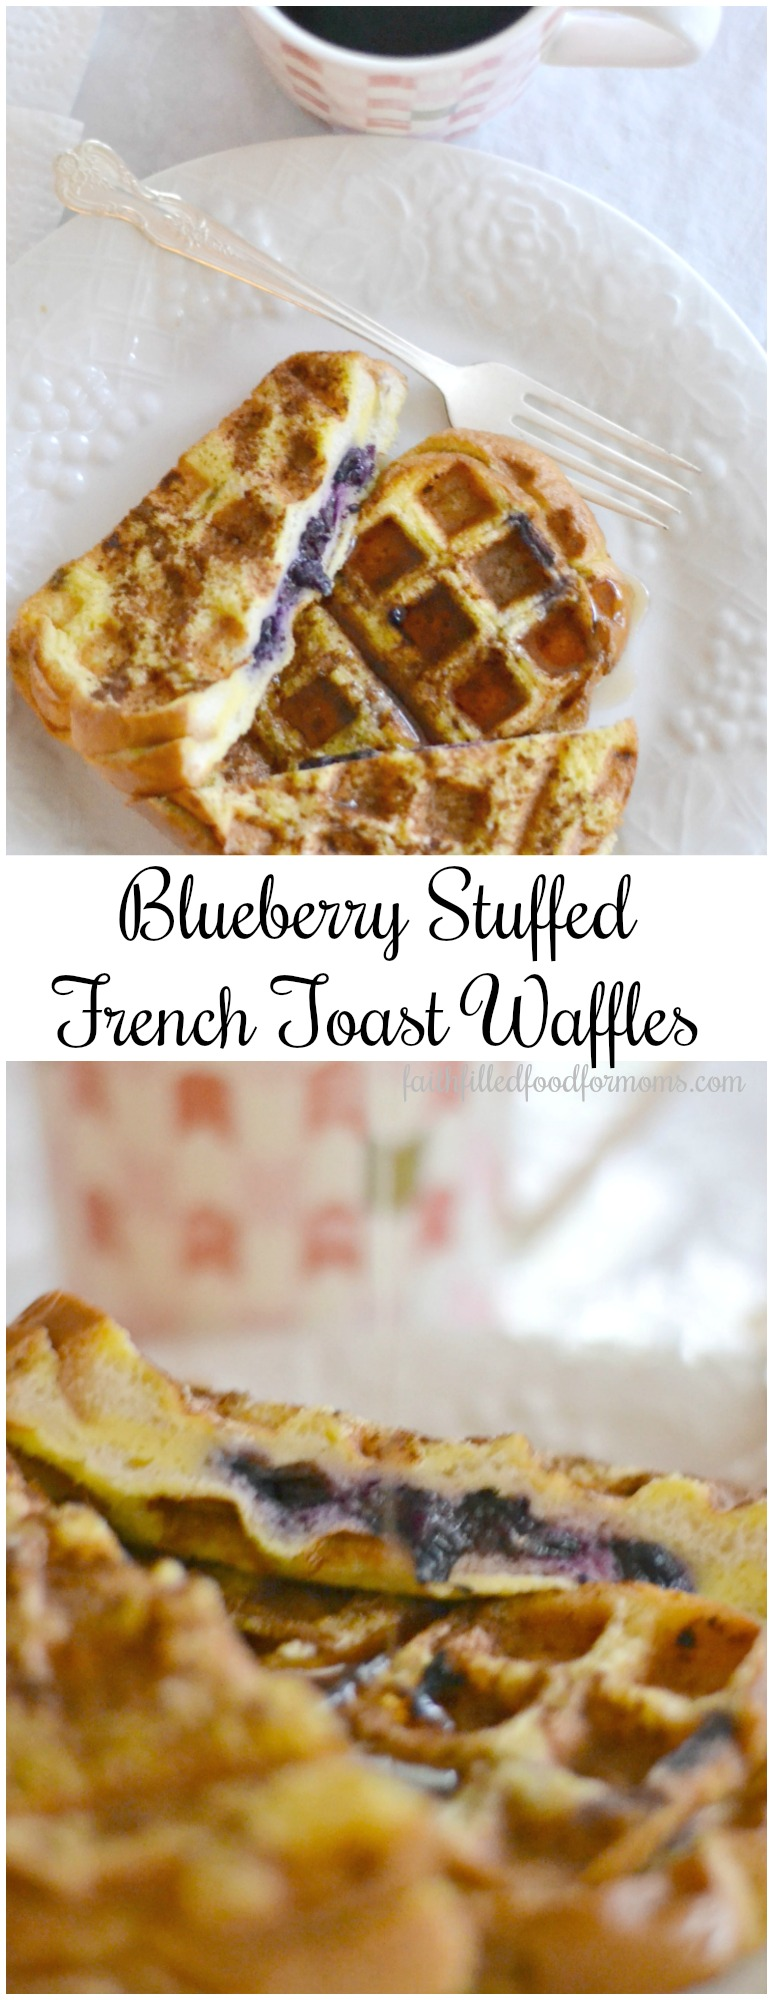 These easy unique Blueberry Stuffed French toast waffles are simply heavenly! With a touch of Vanilla and Cinnamon these are the Best you'll ever taste! You can also make a ton of them and freeze for later! #frenchtoast #waffles #recipe